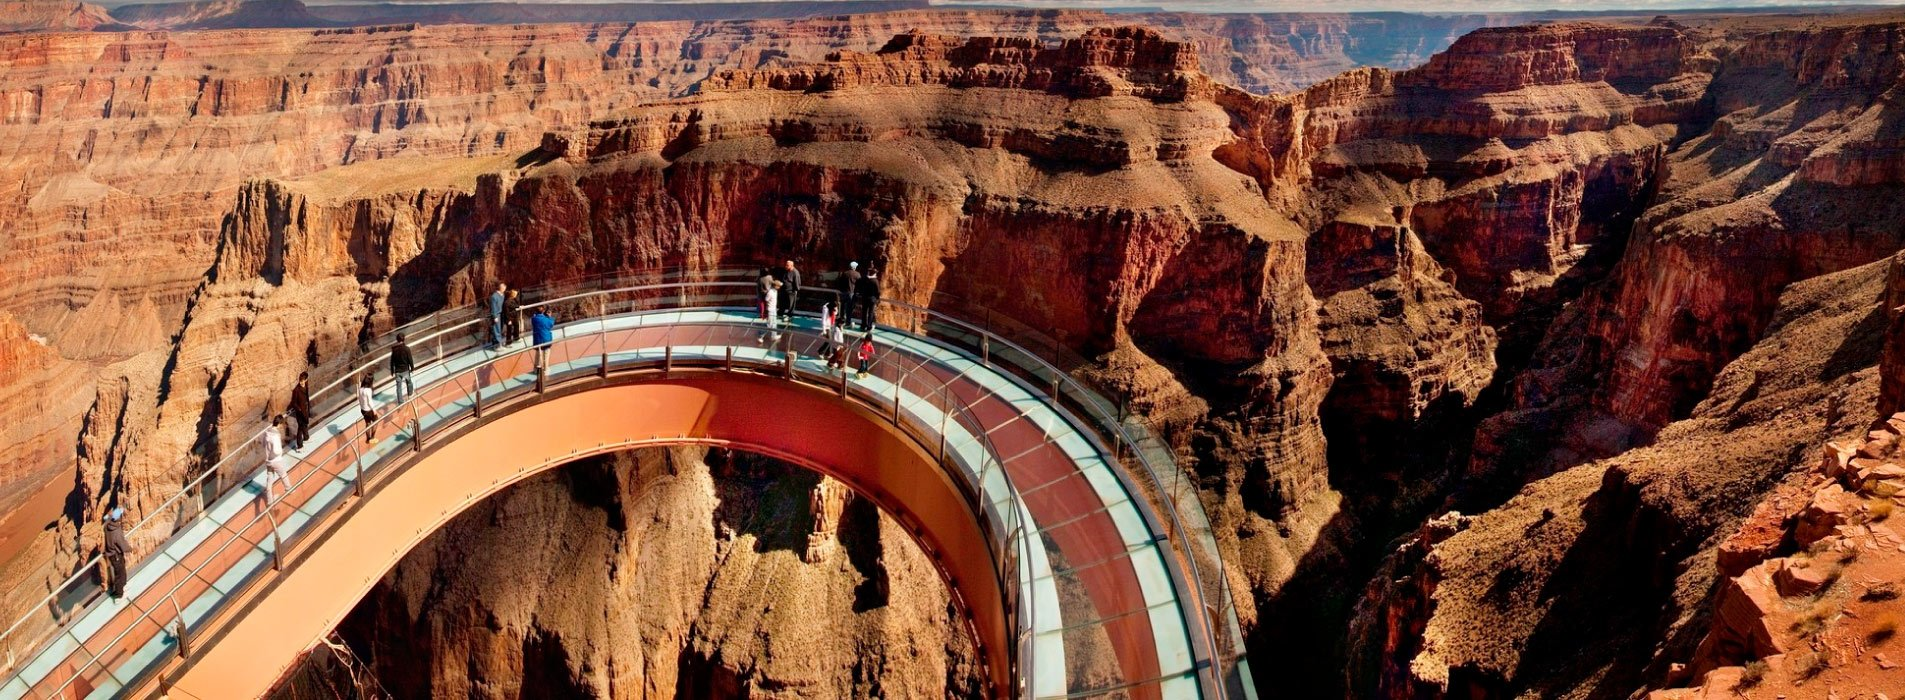 Guests walking on the Skywalk glass bridge at Grand Canyon West Rim